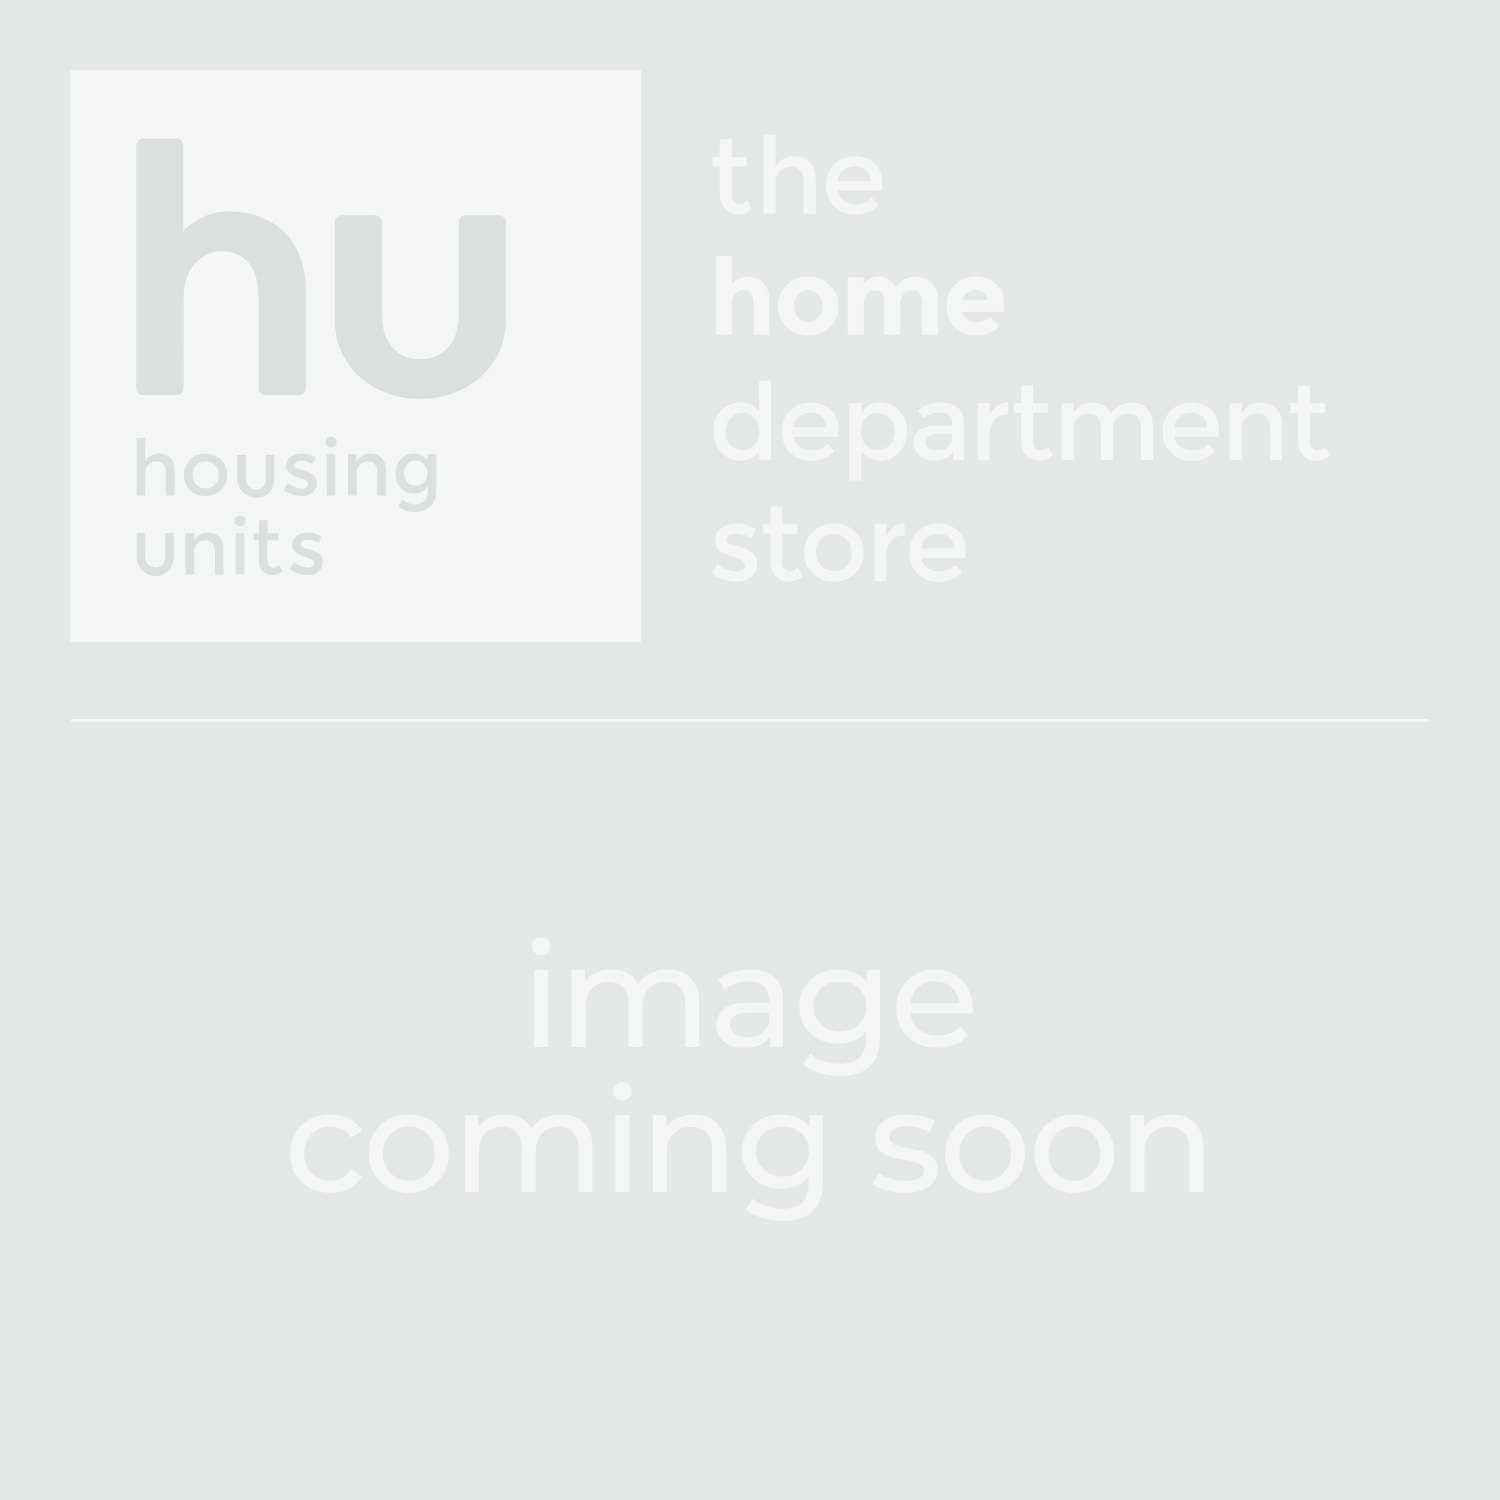 Celine Crystal & Chrome 6 Light Oblong Pendant Light | Housing Units